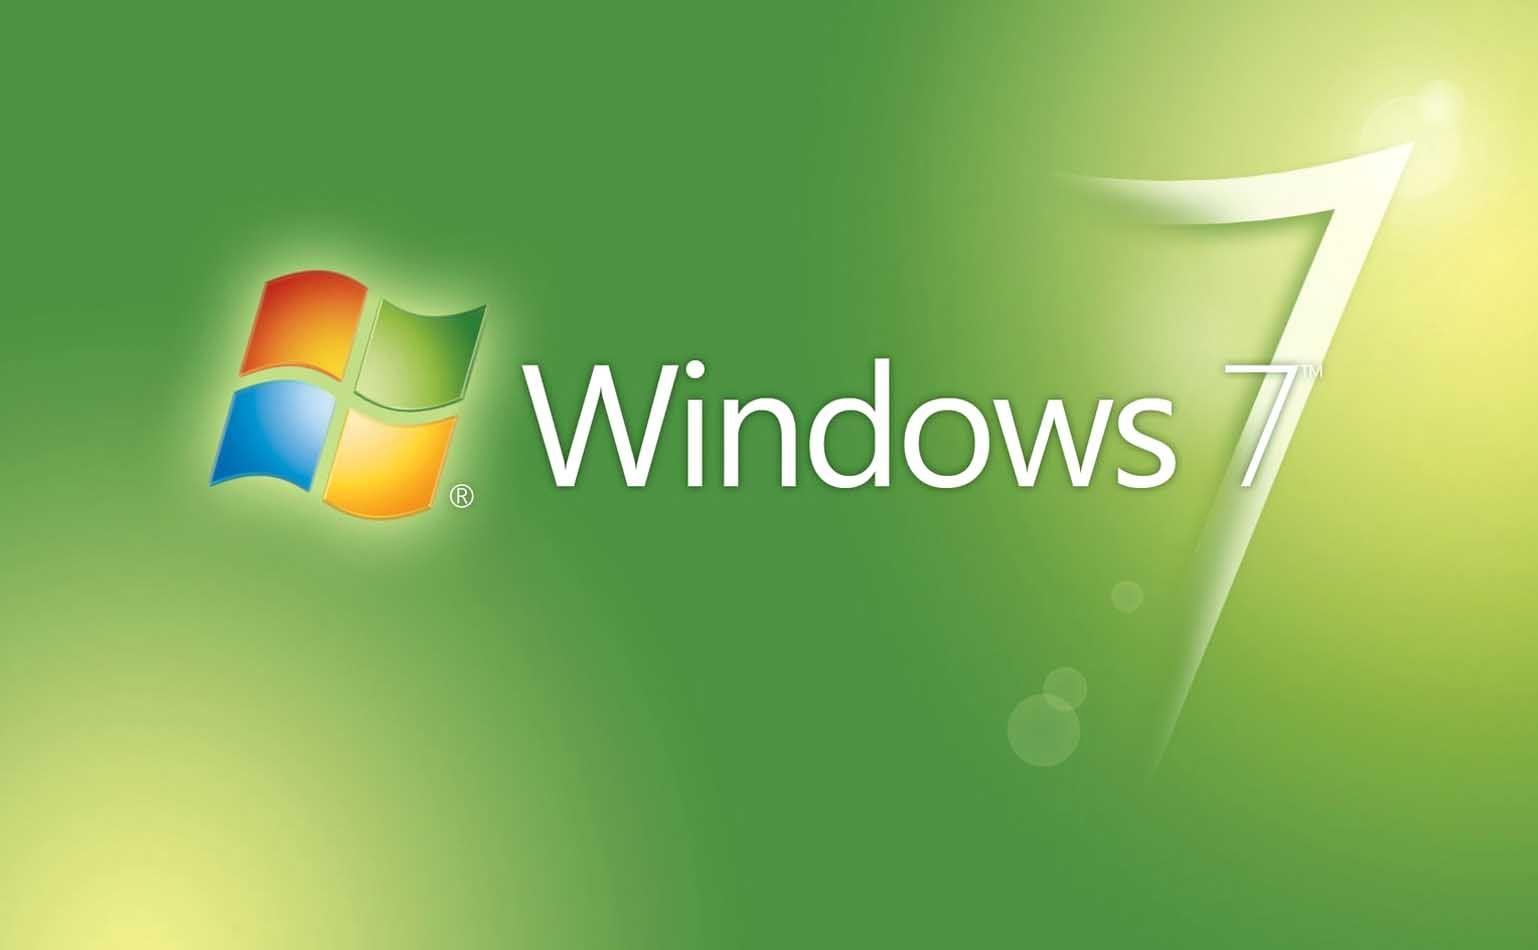 Windows 7 ultimate wallpapers download   SF Wallpaper 1538x950